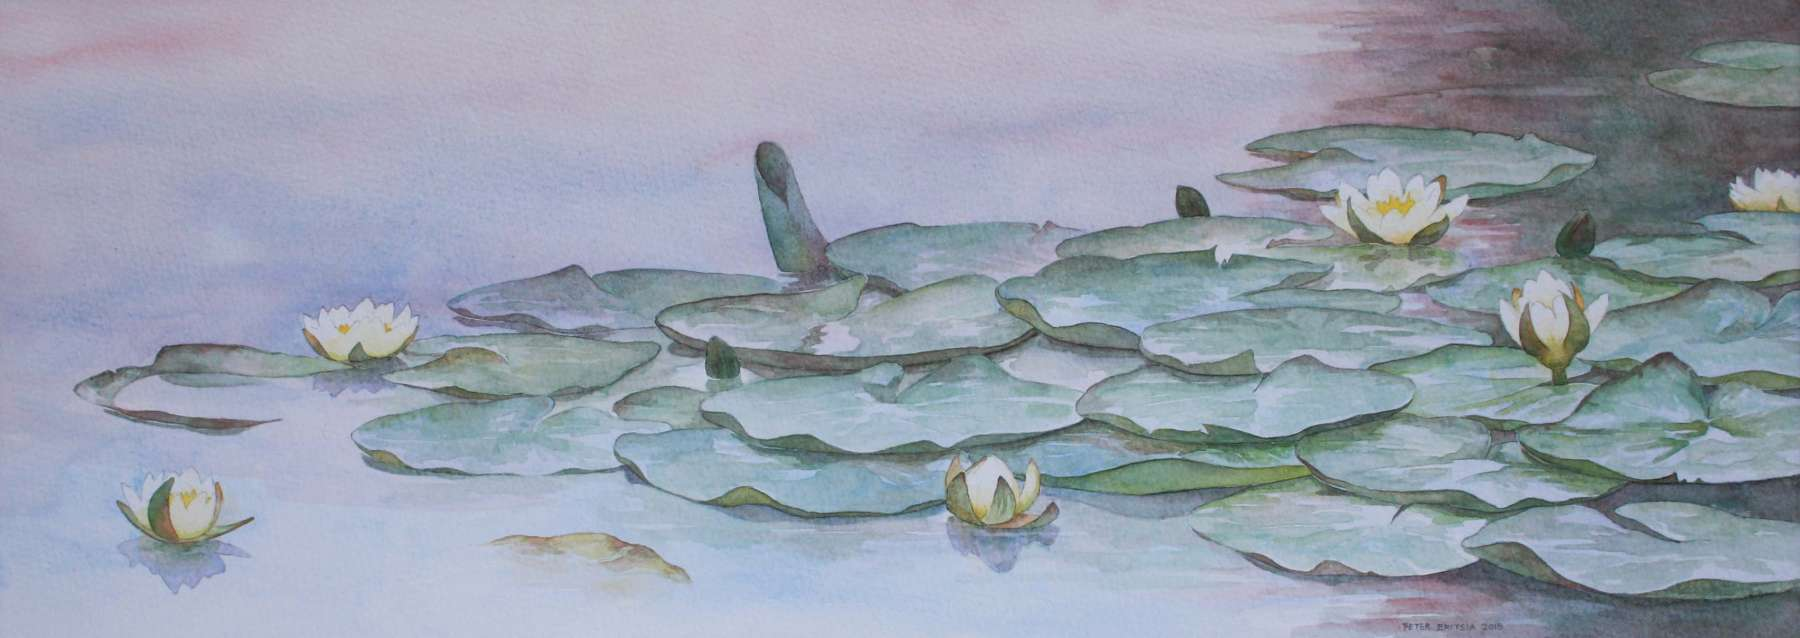 Waterlelies - aquarel - 60 x 22 cm.